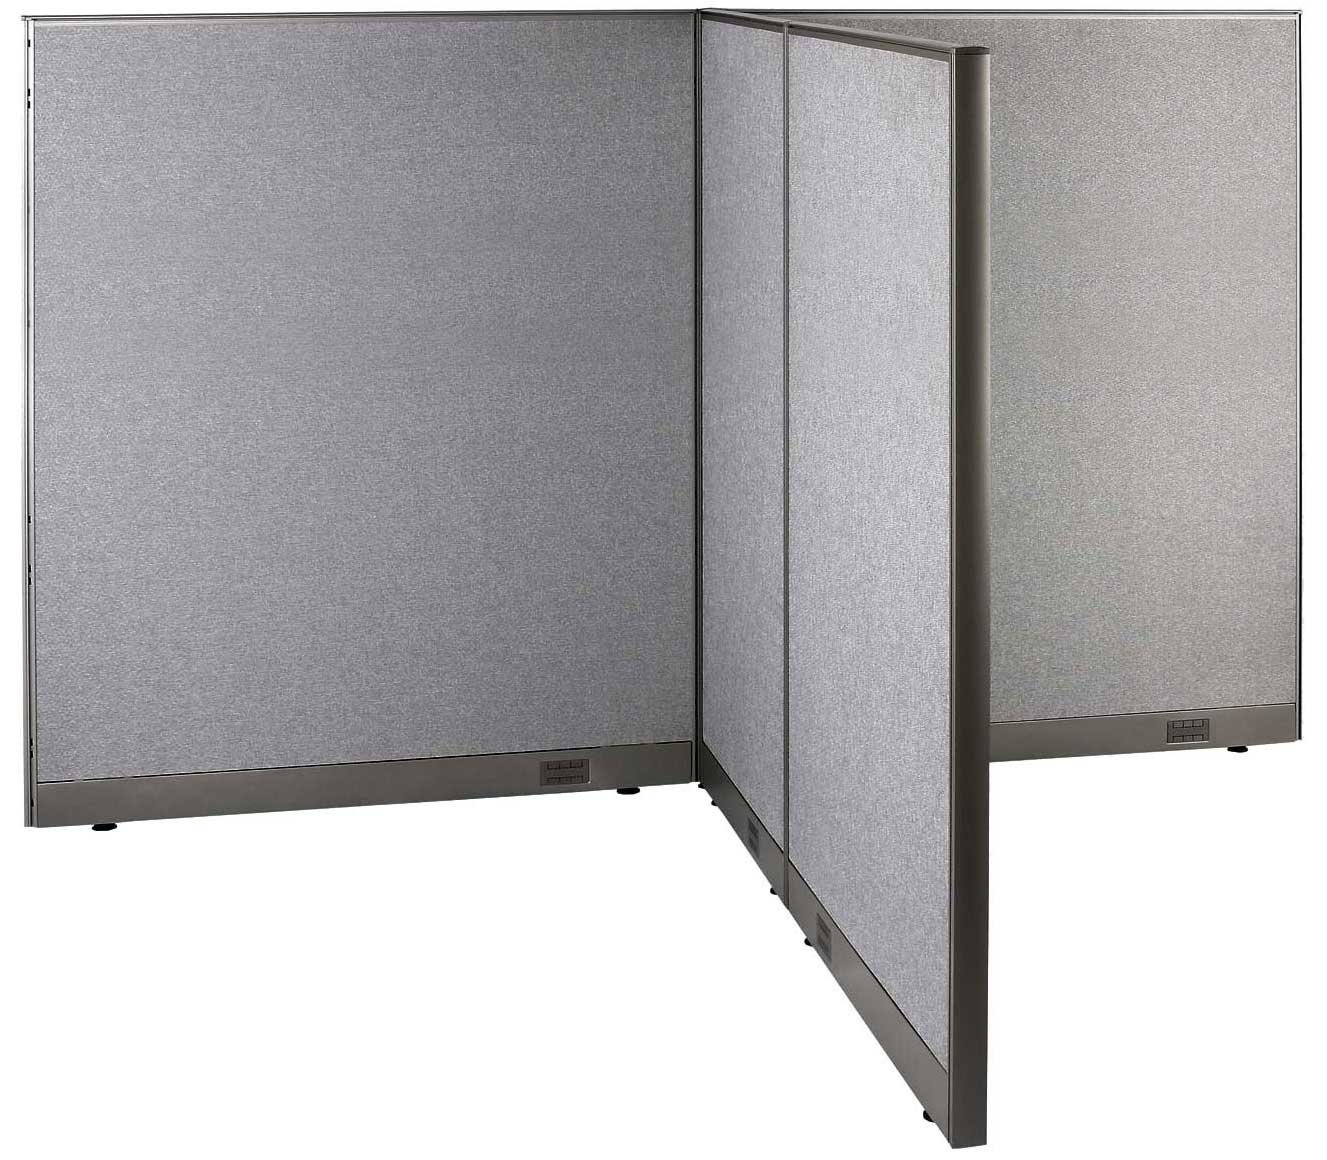 GOF T-Shaped Freestanding Partition 66d x 96w x 72h / Office, Room Divider by GOF